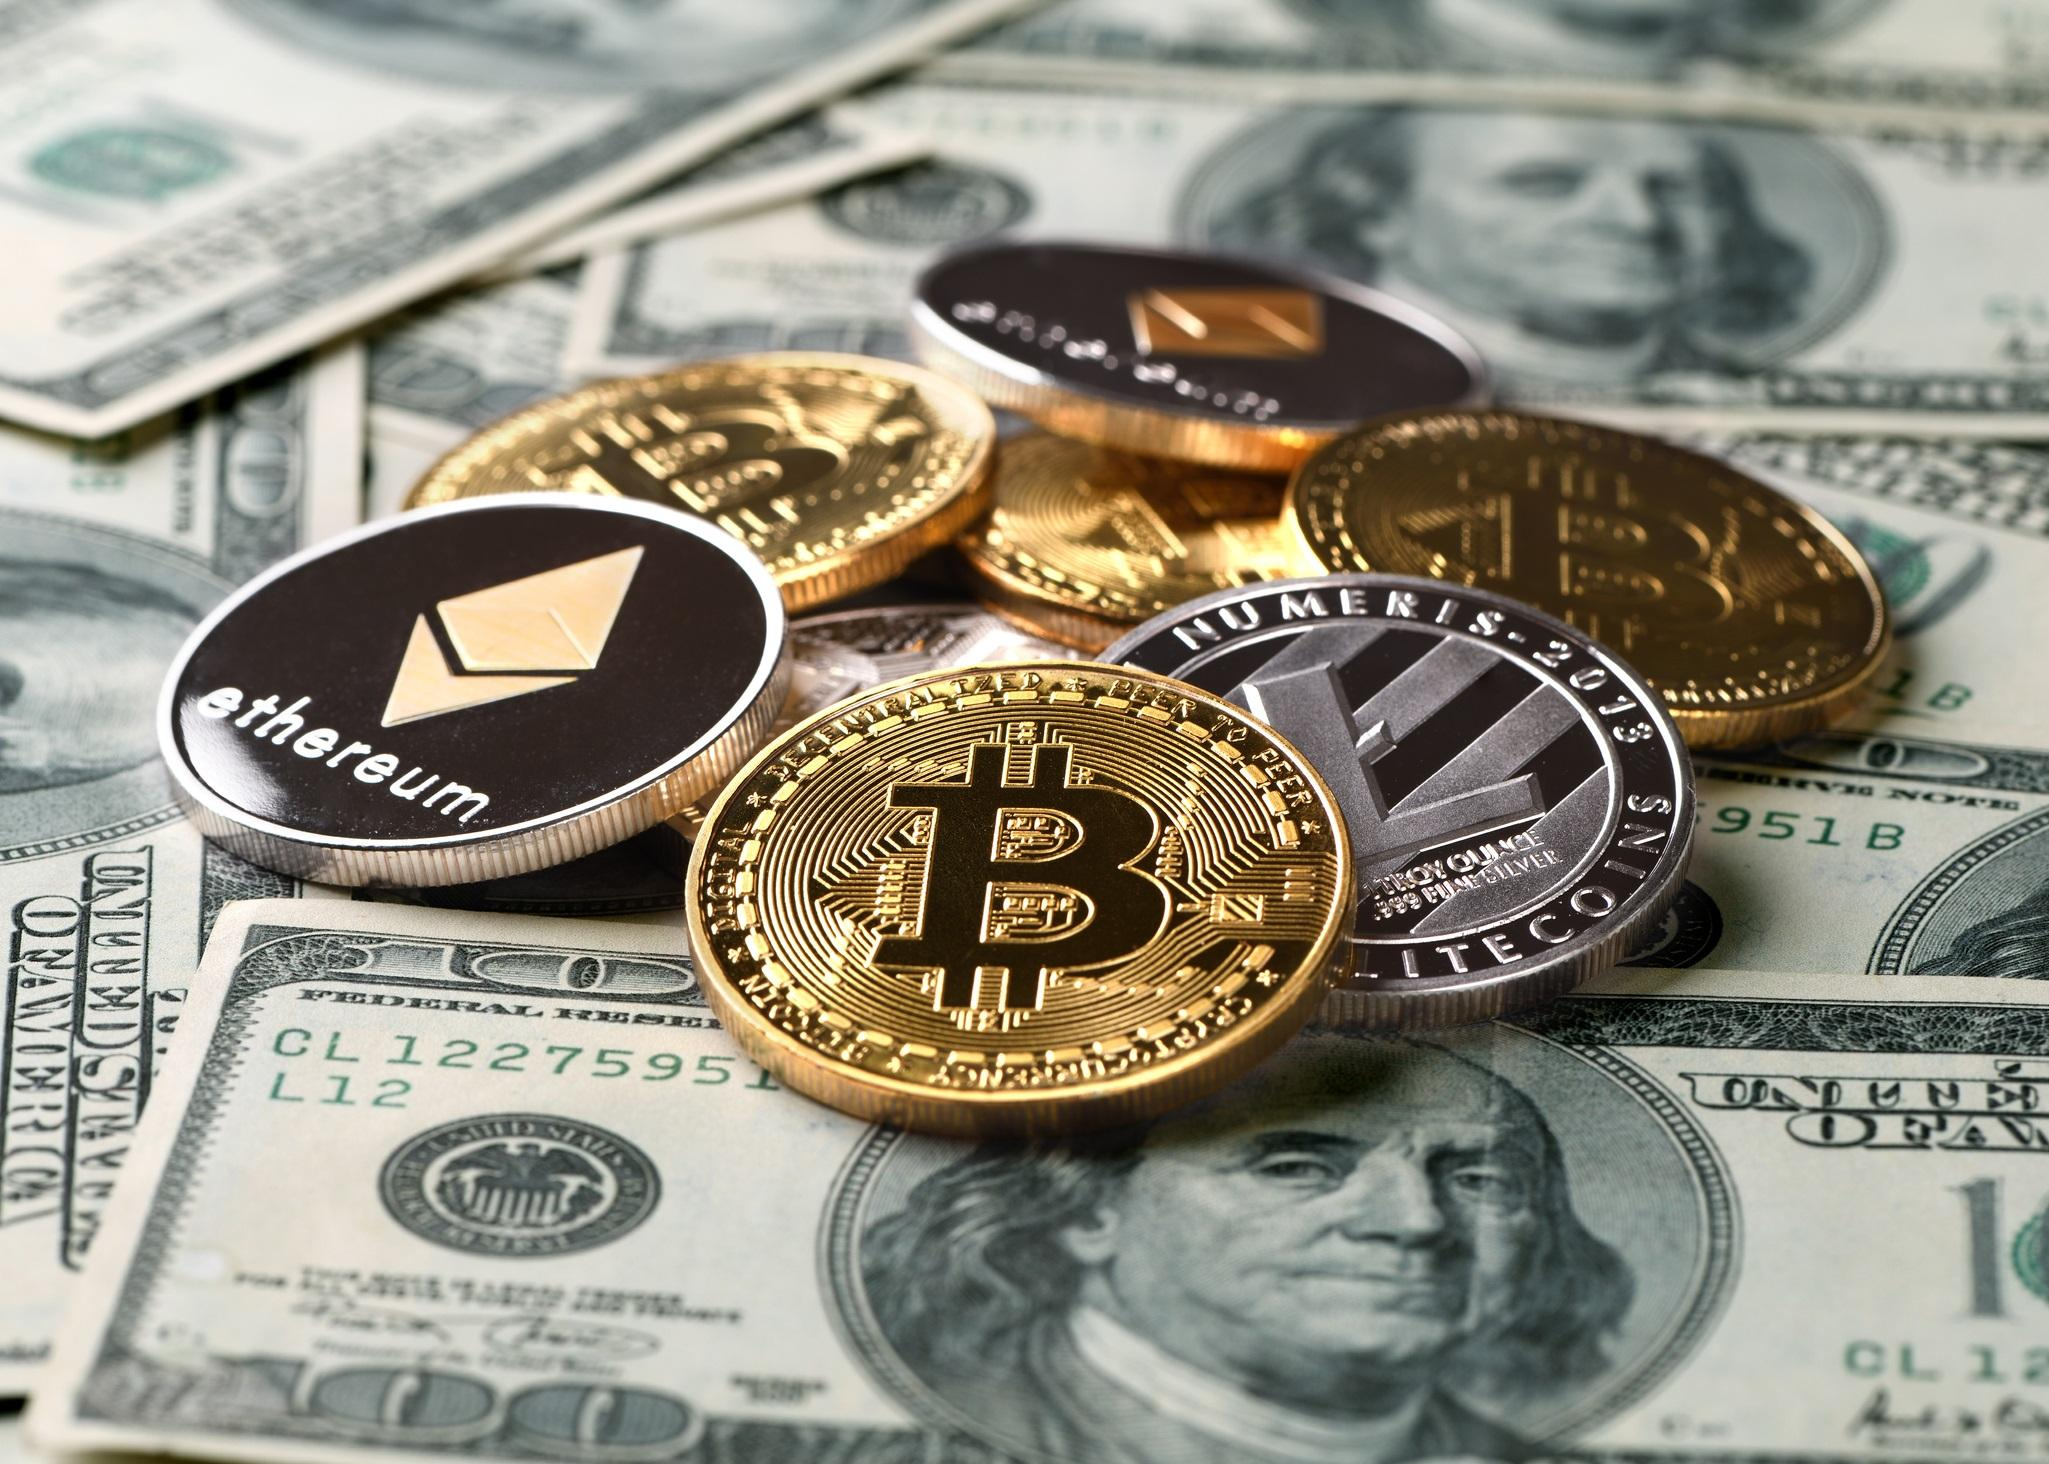 Bitcoin wallet Blockchain to give away $125m of cryptocurrency to encourage mass adoption